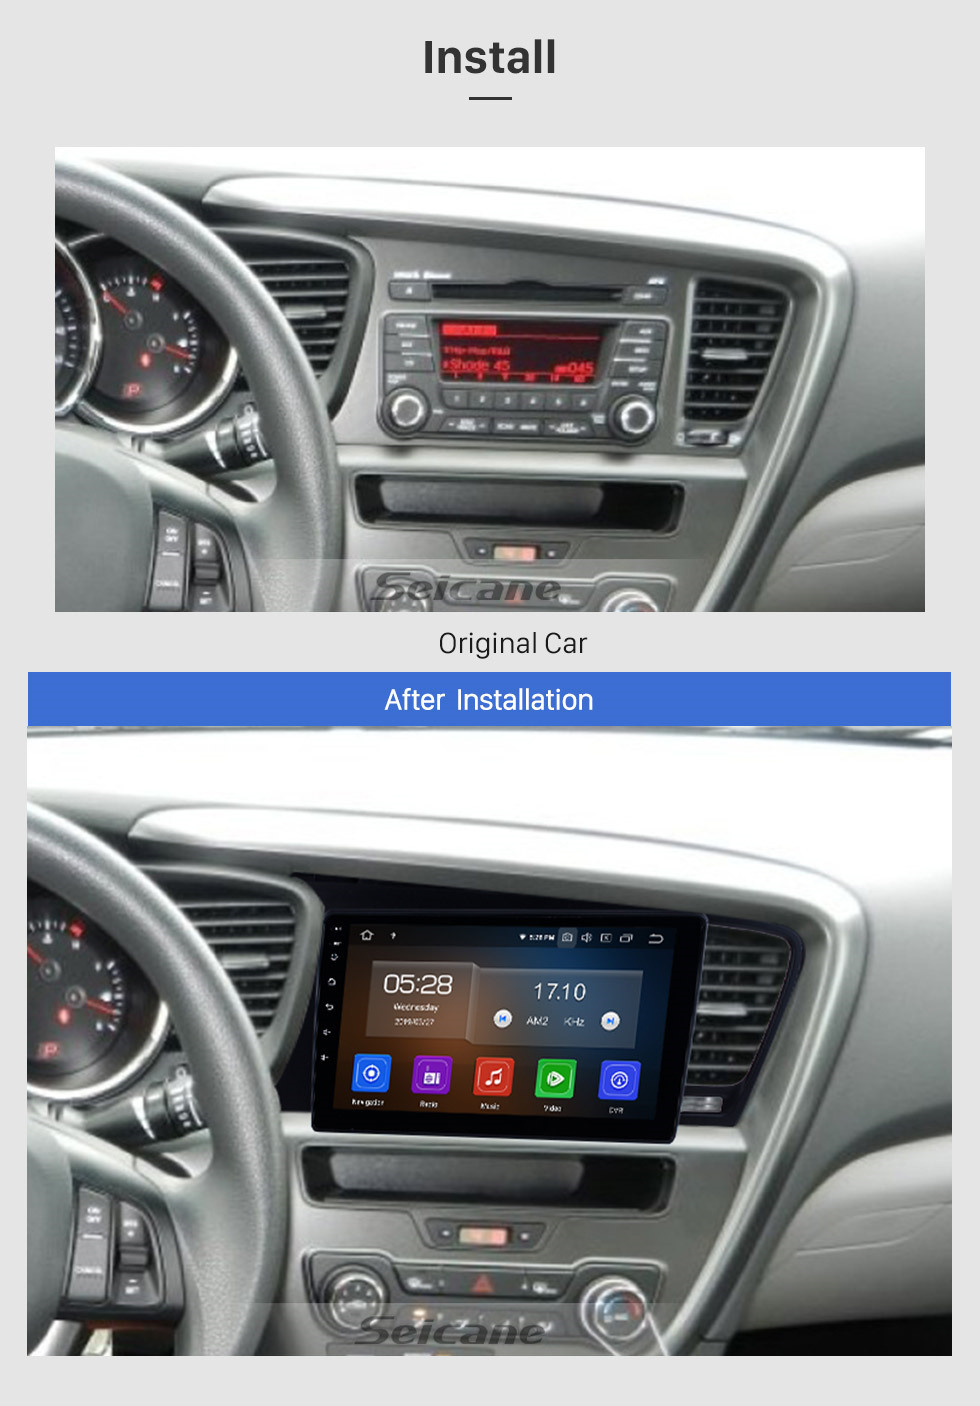 Seicane 9 Inch Aftermarket Android 10.0 GPS Navigation System Head Unit For 2011 2012 2013 2014 Kia K5 Touch Screen Bluetooth Radio Support Remote Control TV tuner DVD Player